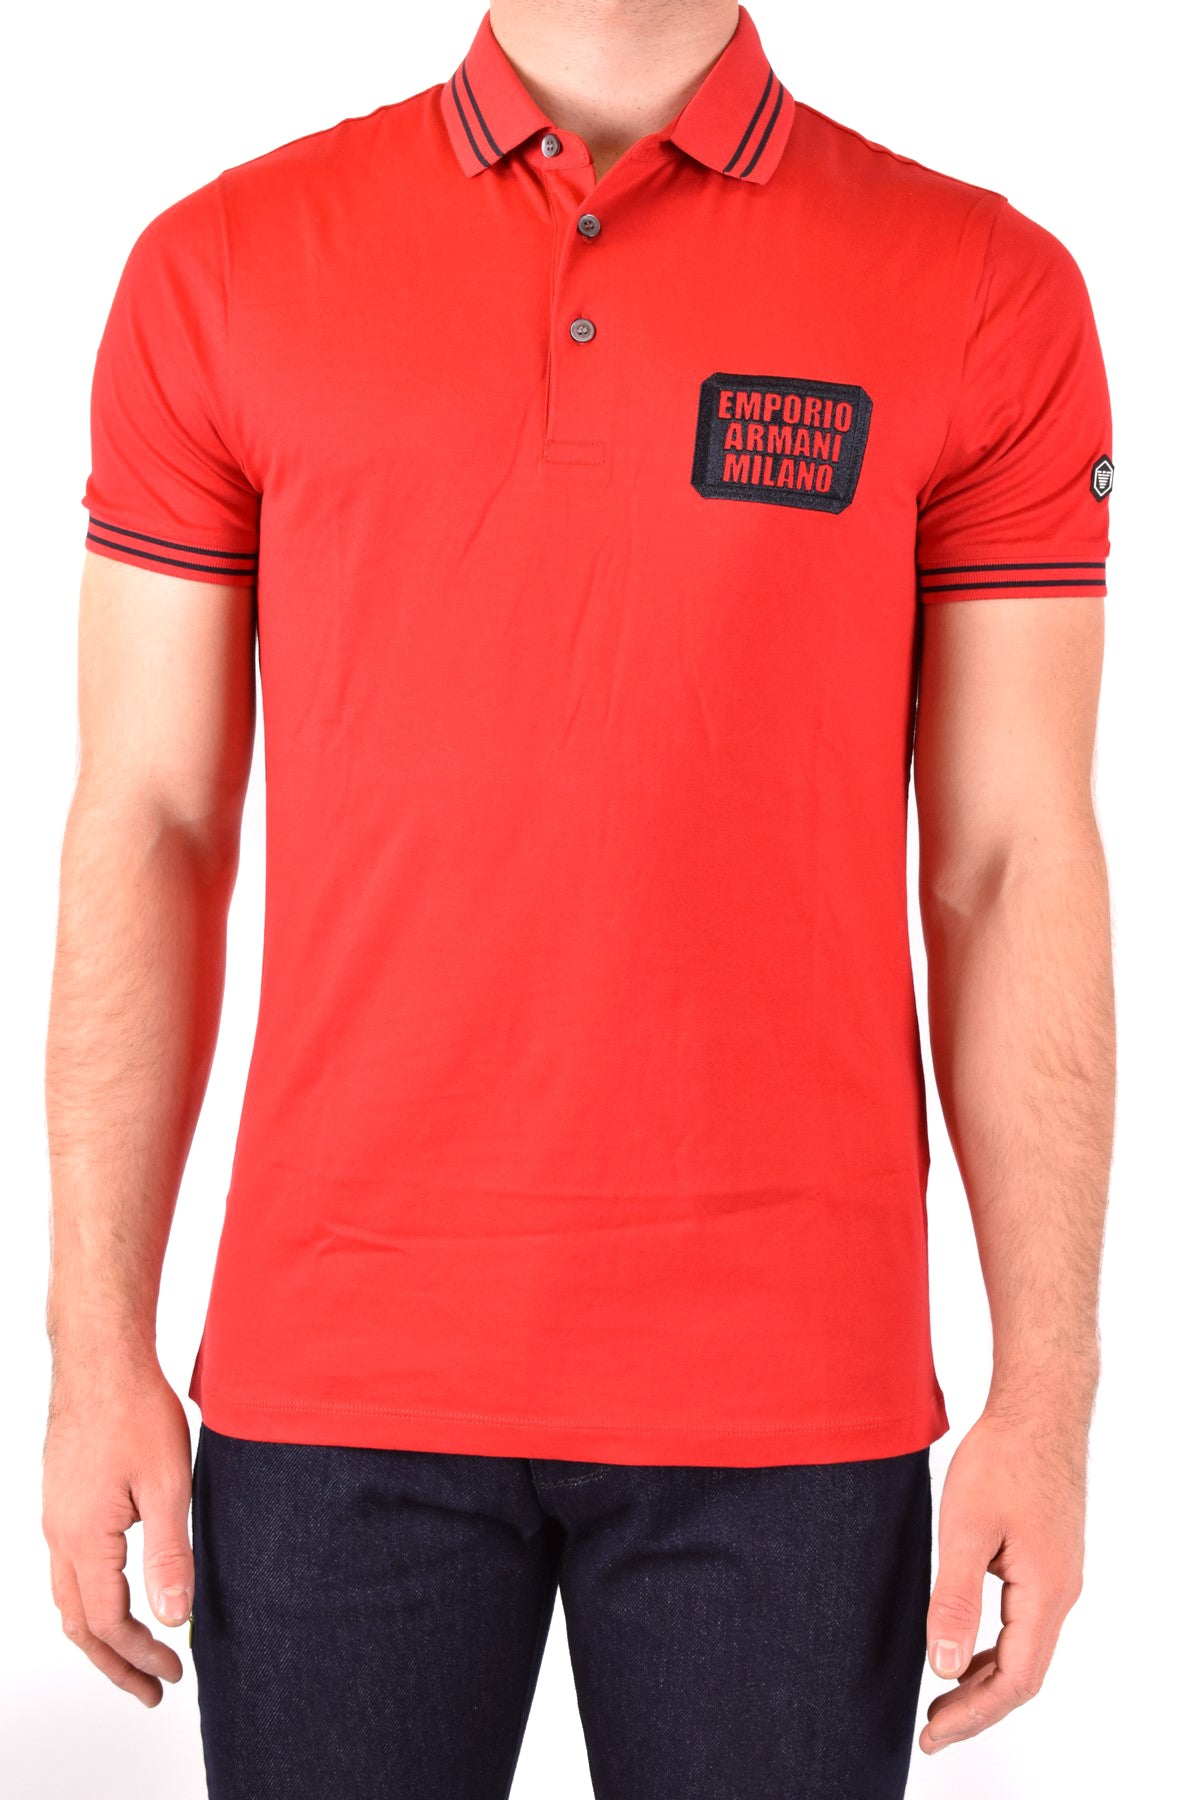 Polo Emporio Armani-Men's Fashion - Men's Clothing - Tops & Tees - Polo-M-Product Details Terms: New With LabelClothing Type: PoleMain Color: RedSeason: Spring / SummerMade In: VietnamGender: ManSize: IntComposition: Cotton 100%Year: 2020Manufacturer Part Number: 3H1Fn4 1Jcqz F320-Keyomi-Sook